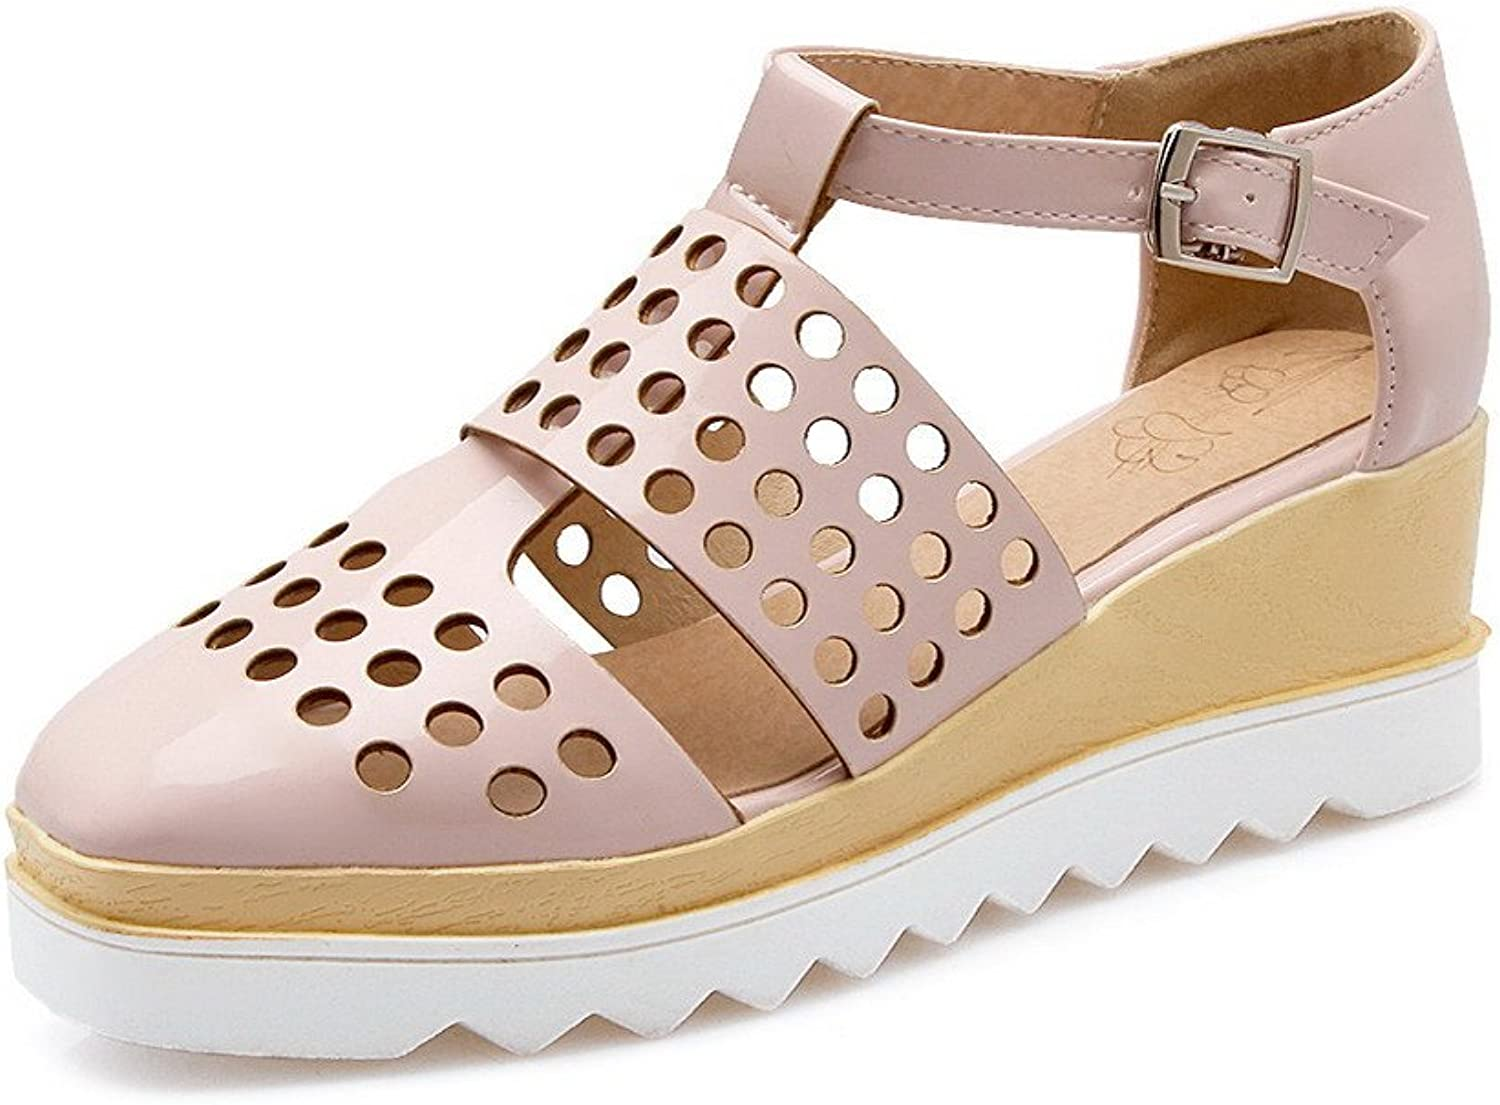 AllhqFashion Women's Soft Material Closed Toe Kitten-Heels Buckle Solid Wedges-Sandals